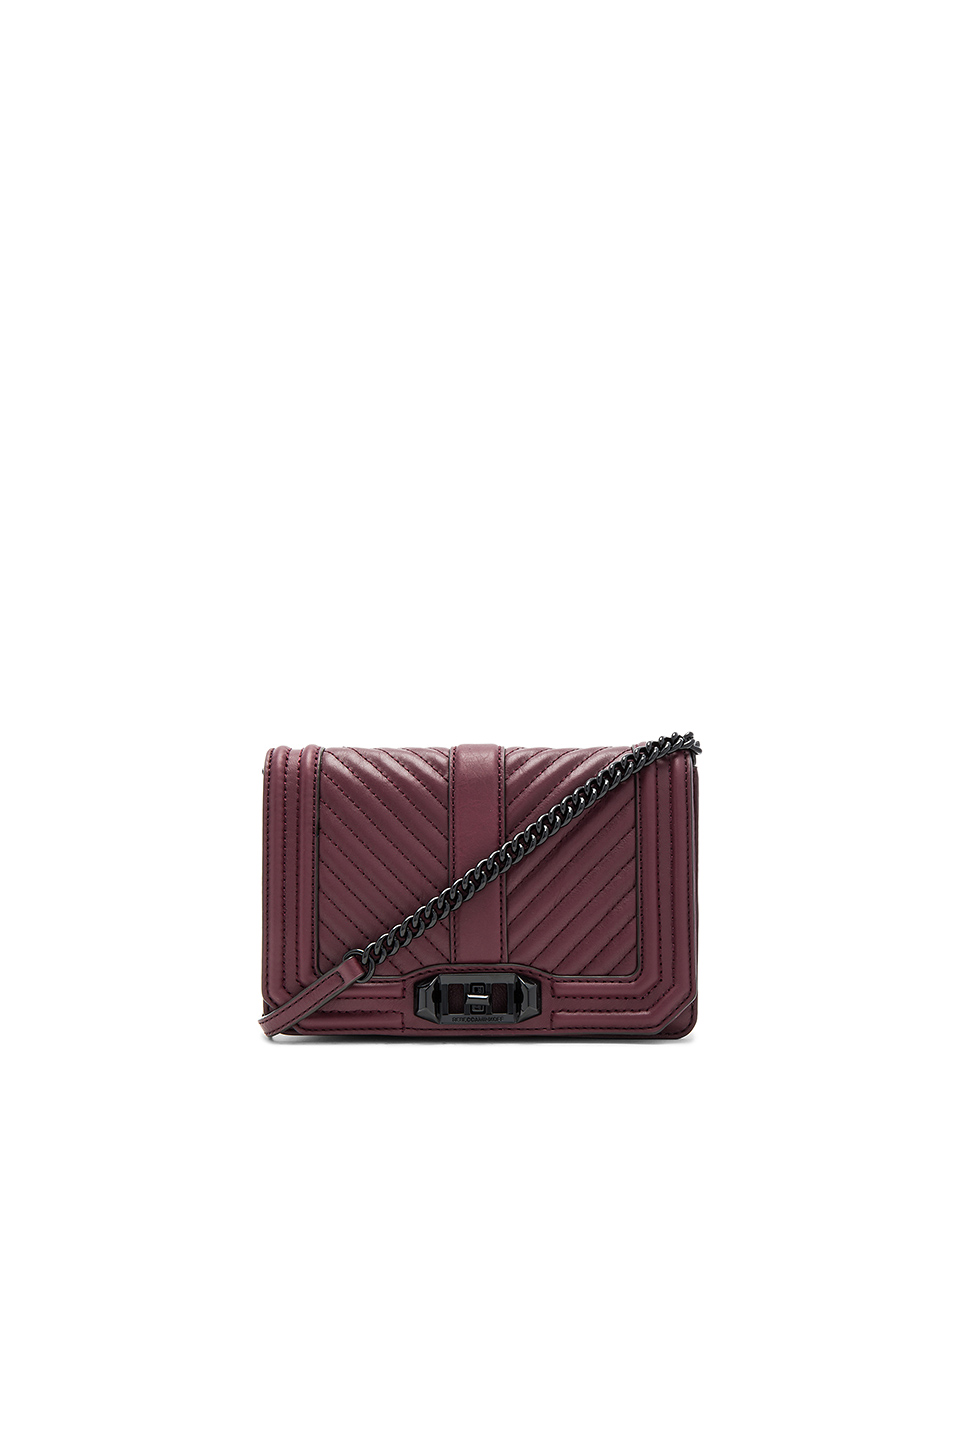 d7510d42dd15 Rebecca Minkoff Chevron Quilted Small Love Crossbody Bag In Burgundy. In  Dark Cherry